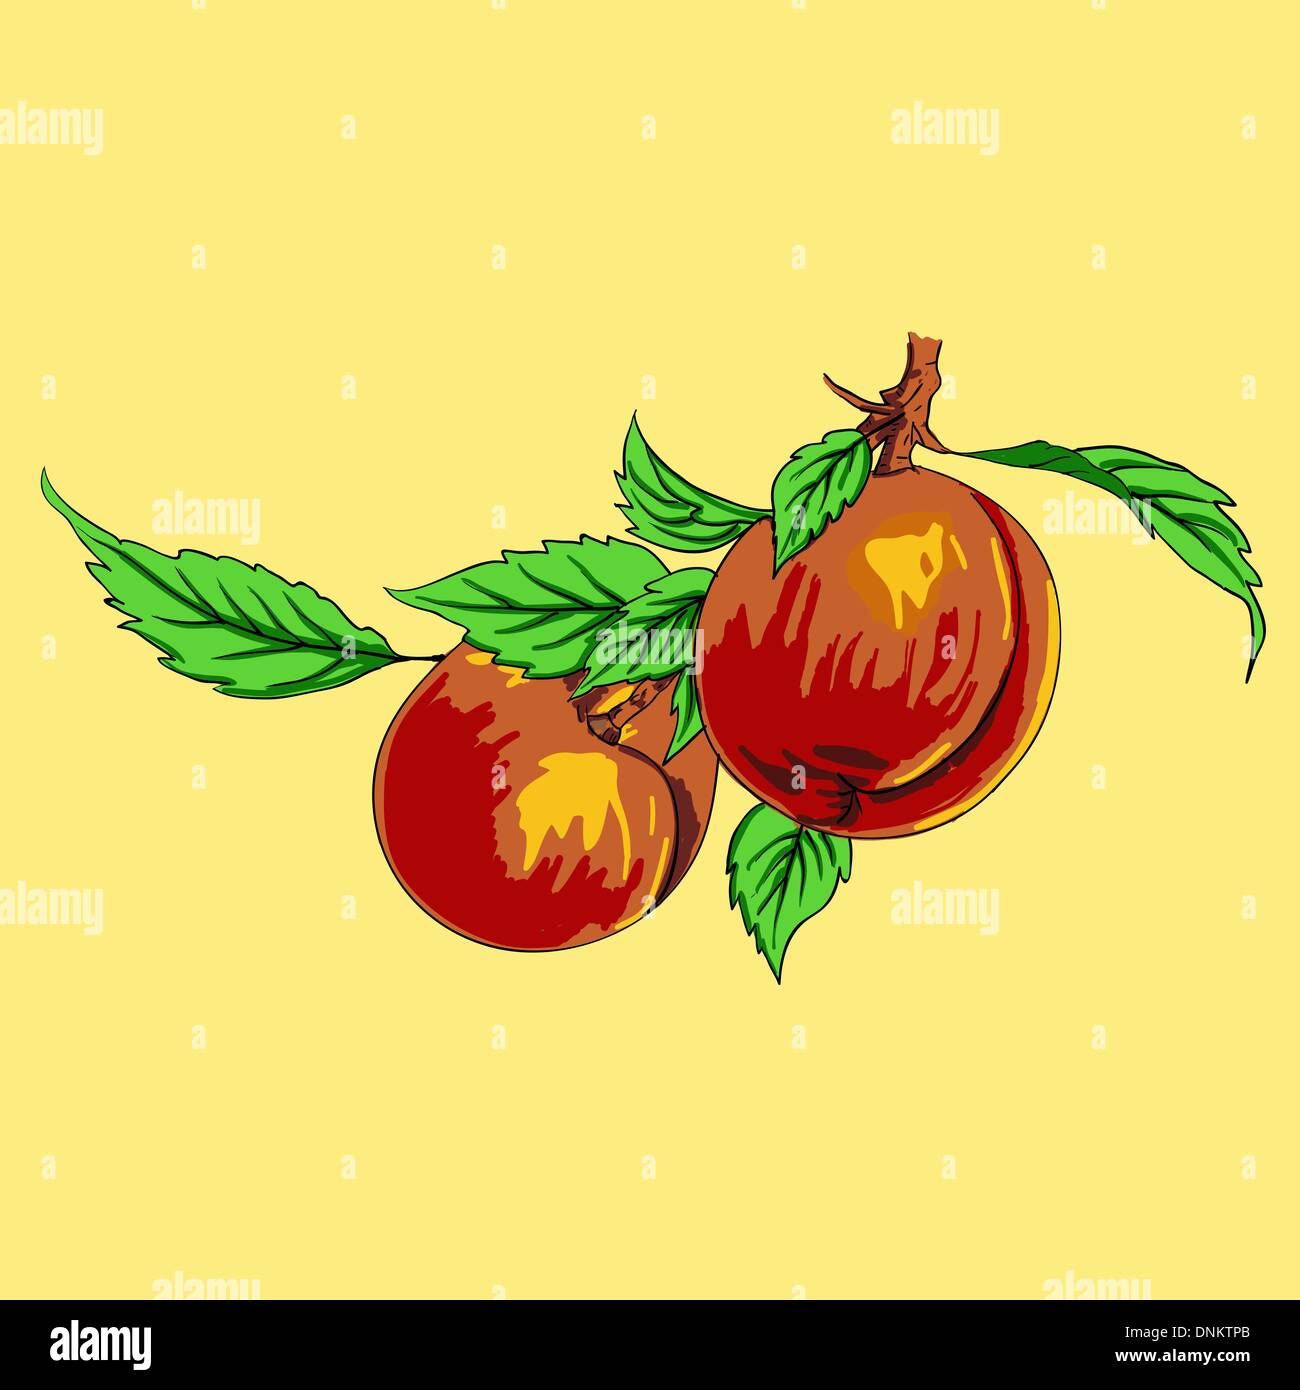 Two peaches with leaves on a branch on a light background Stock Vector